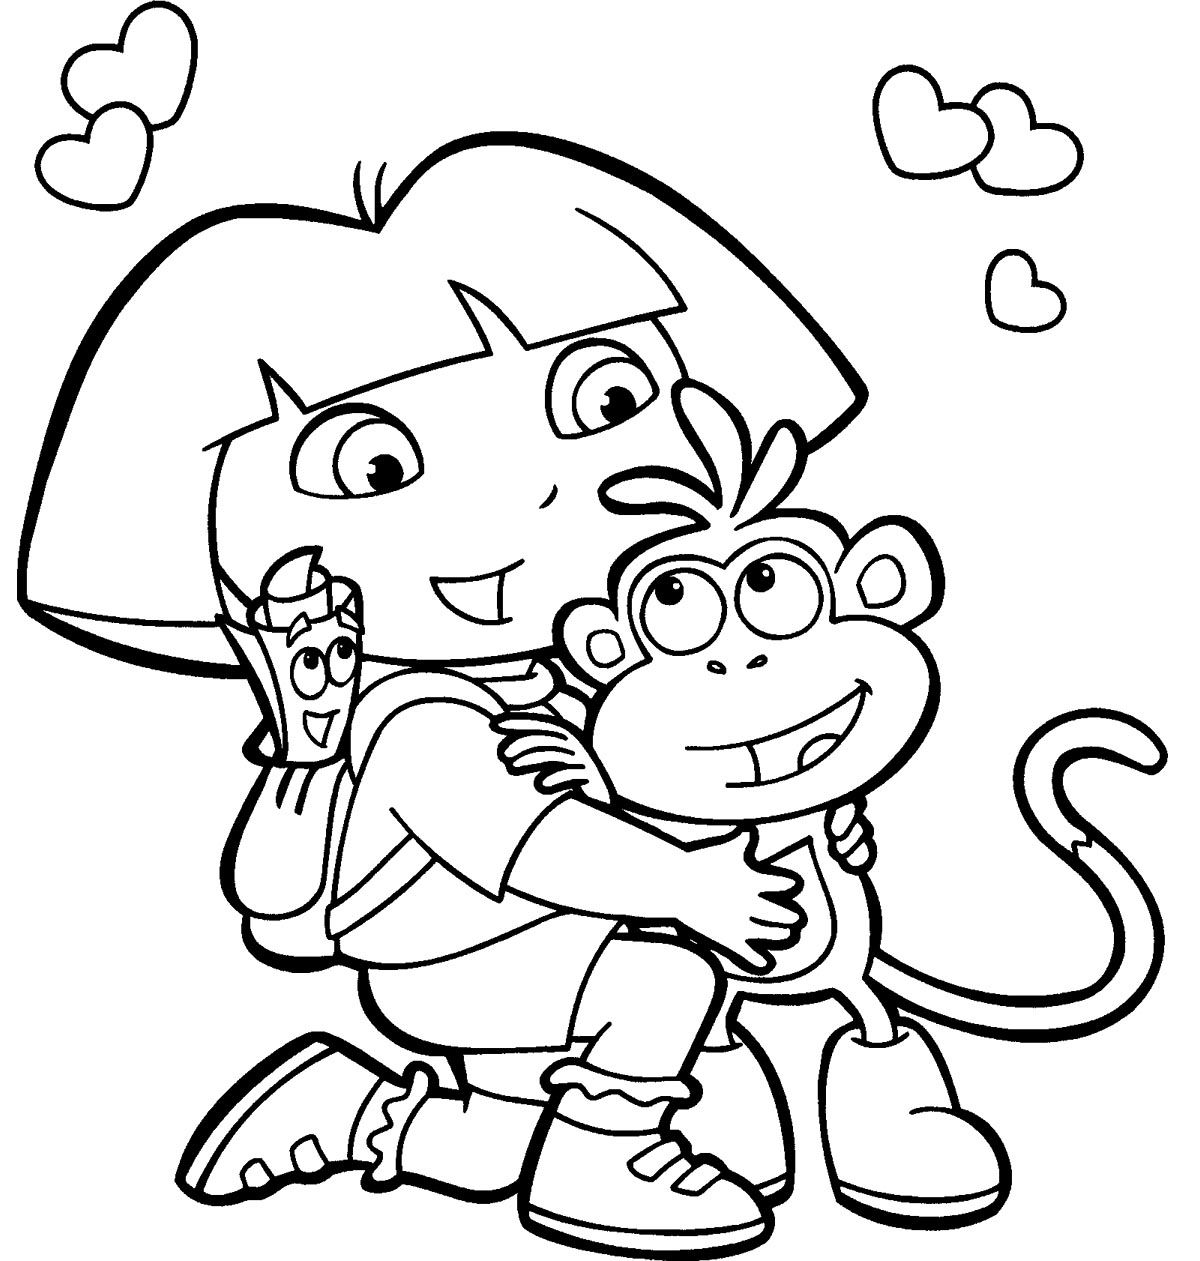 coloring pages with dora - photo#24